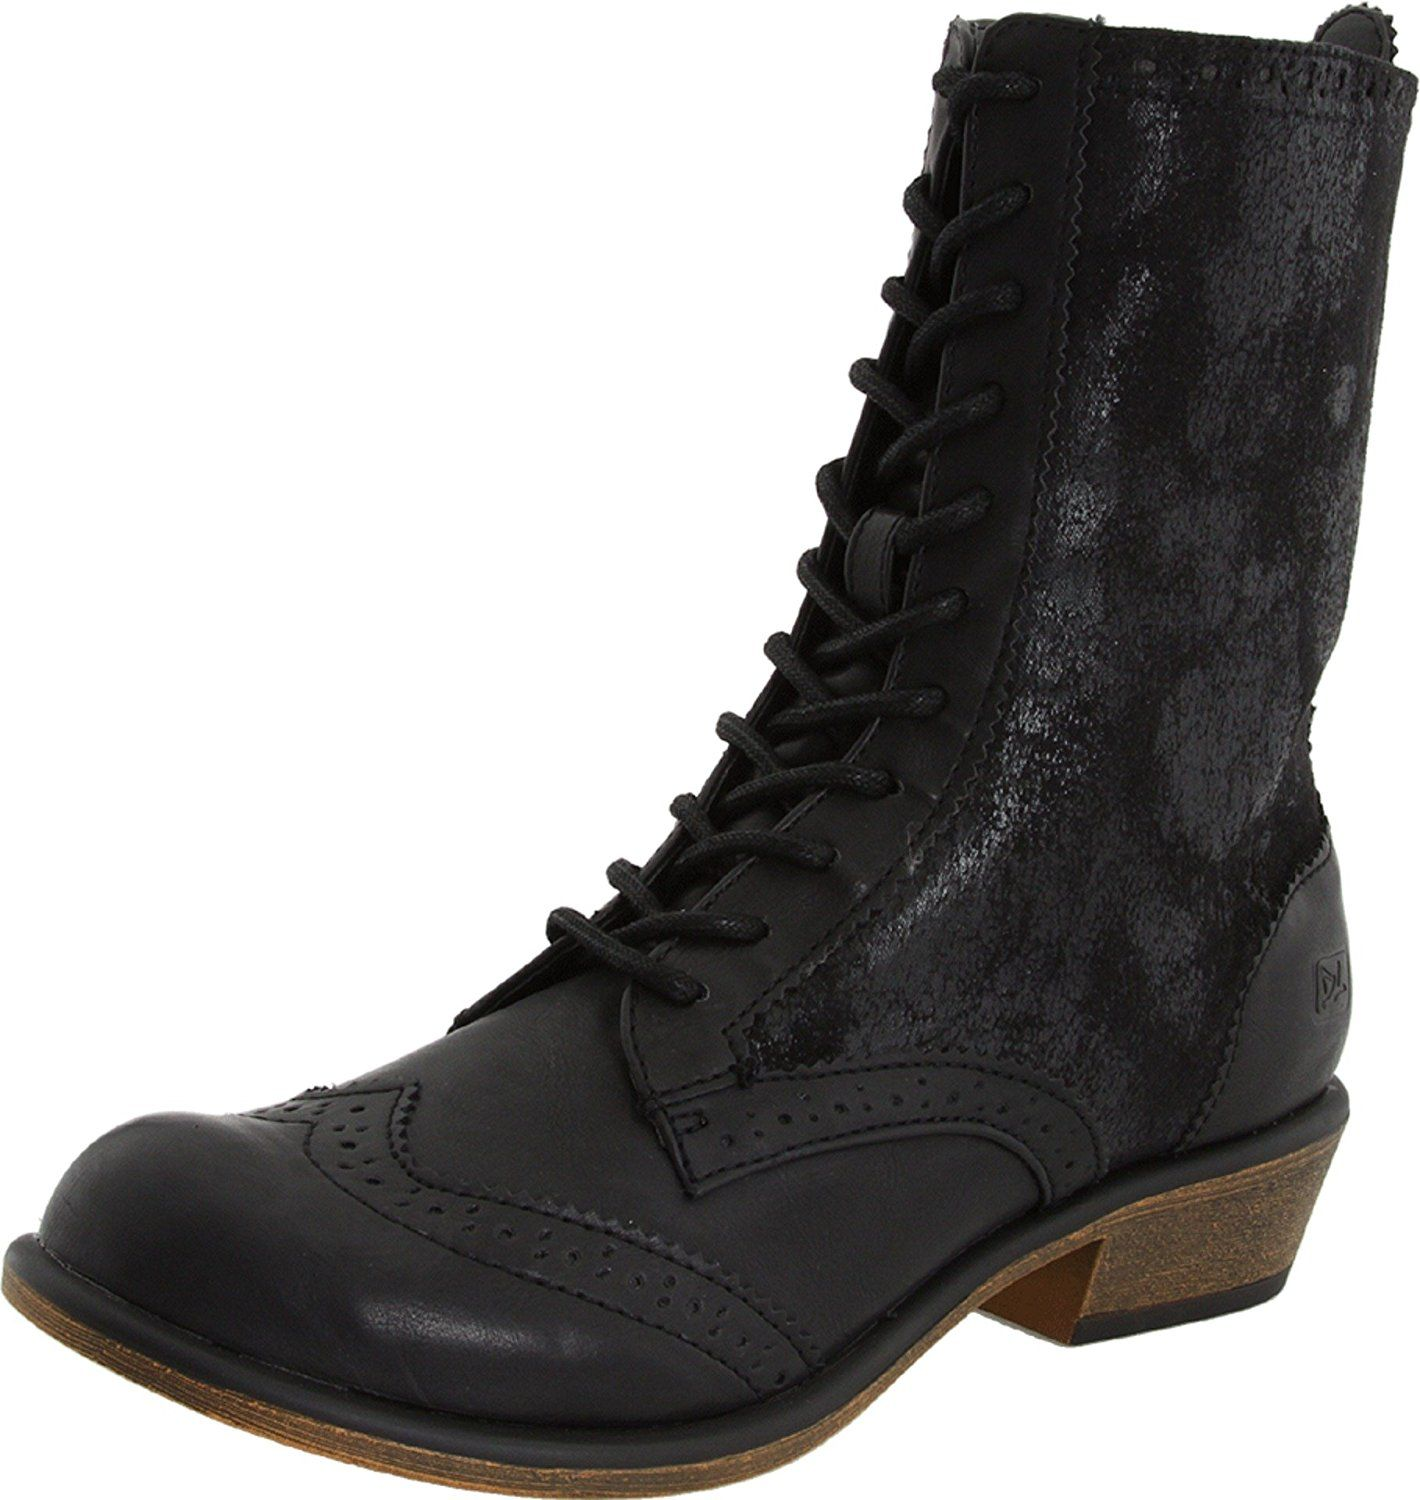 Pin On Women S Ankle Boots And Bootie